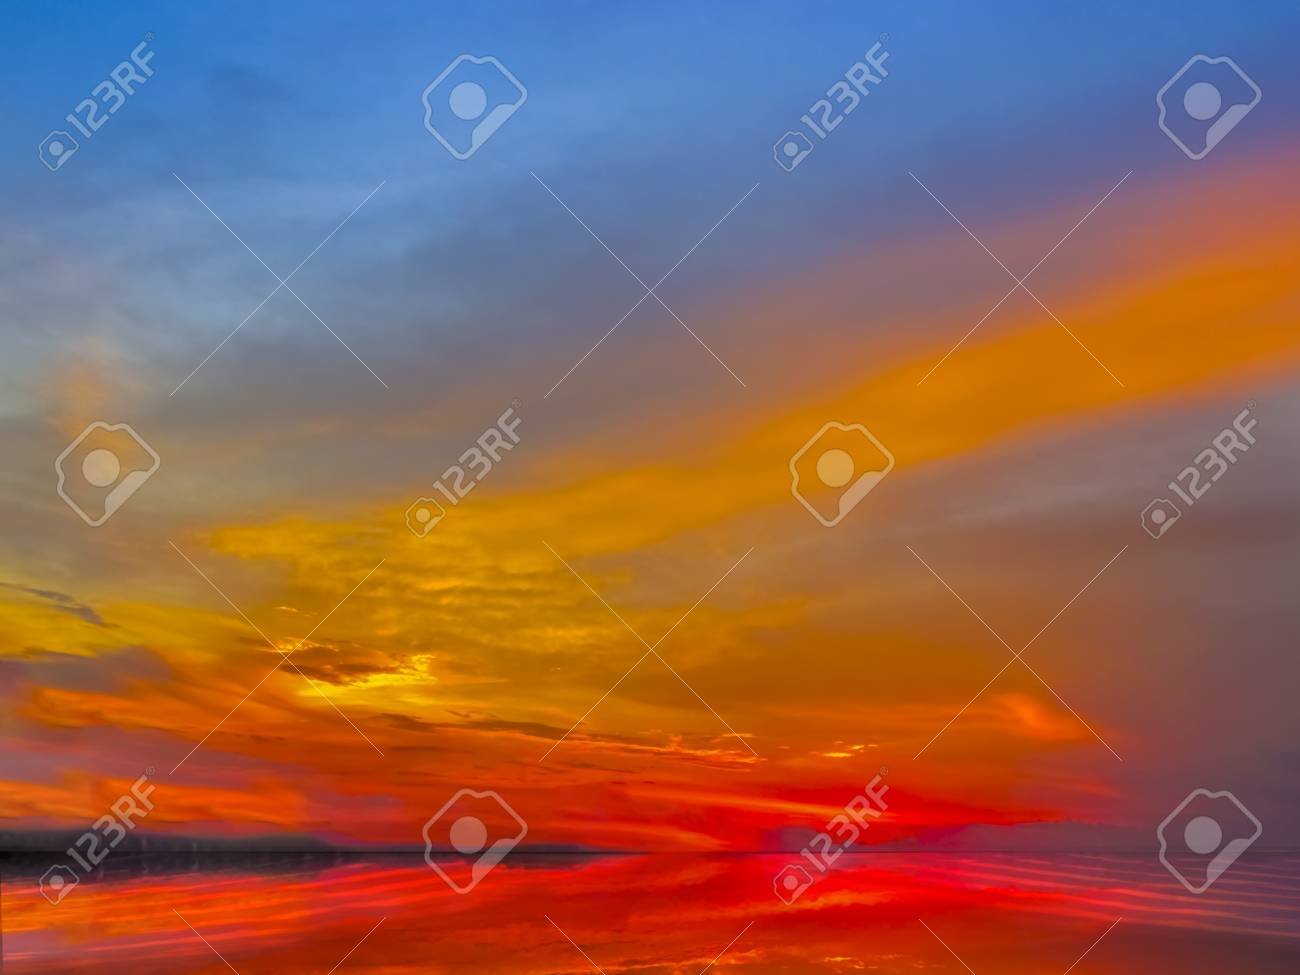 sunset sky of deep multiple colors of after glow scaterred rays